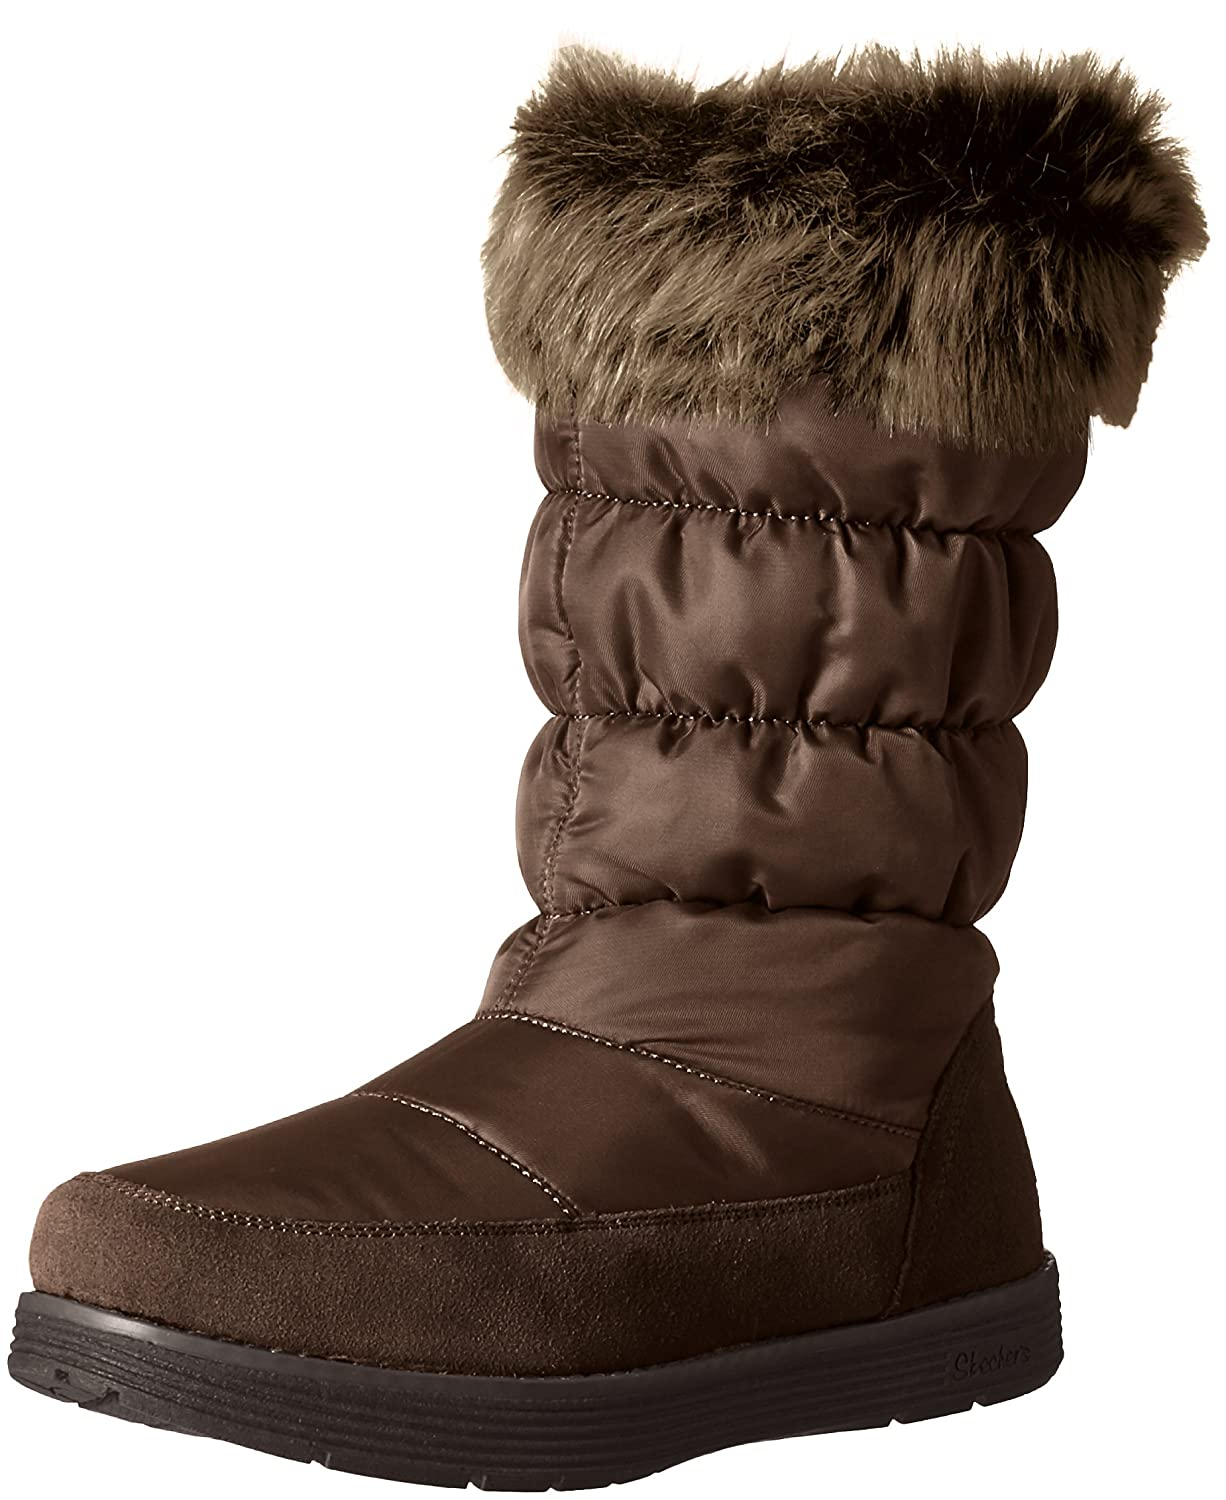 Skechers Women's Adorbs-Nylon Quilted Snow Boot B01CH512PM 6.5 B(M) US|Chocolate